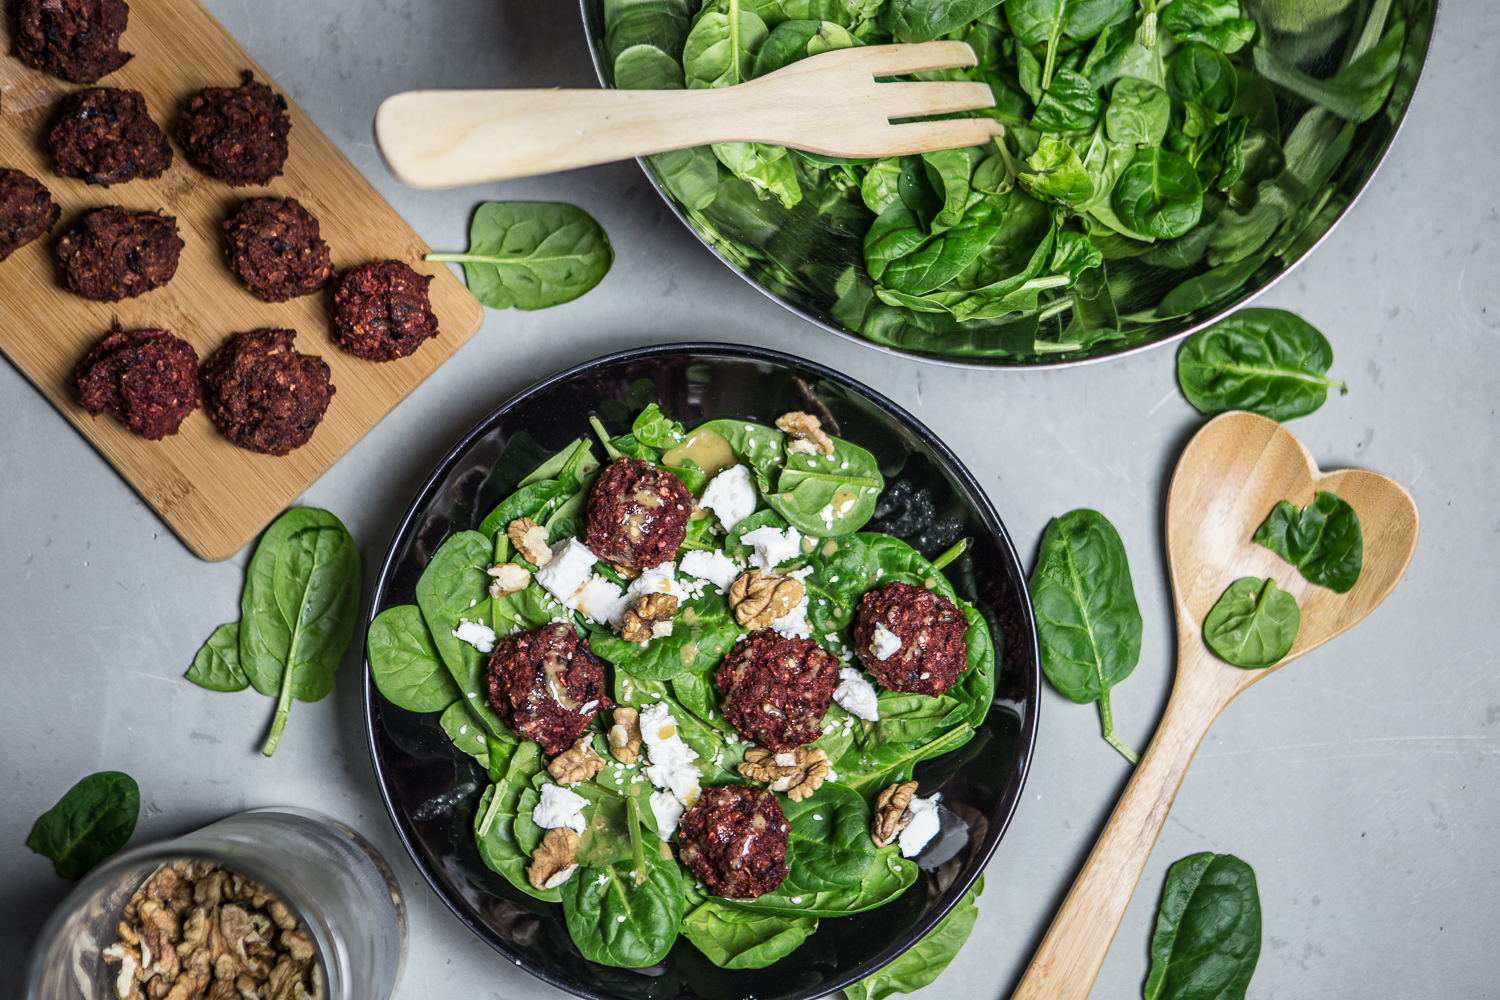 Salad with baked beet balls